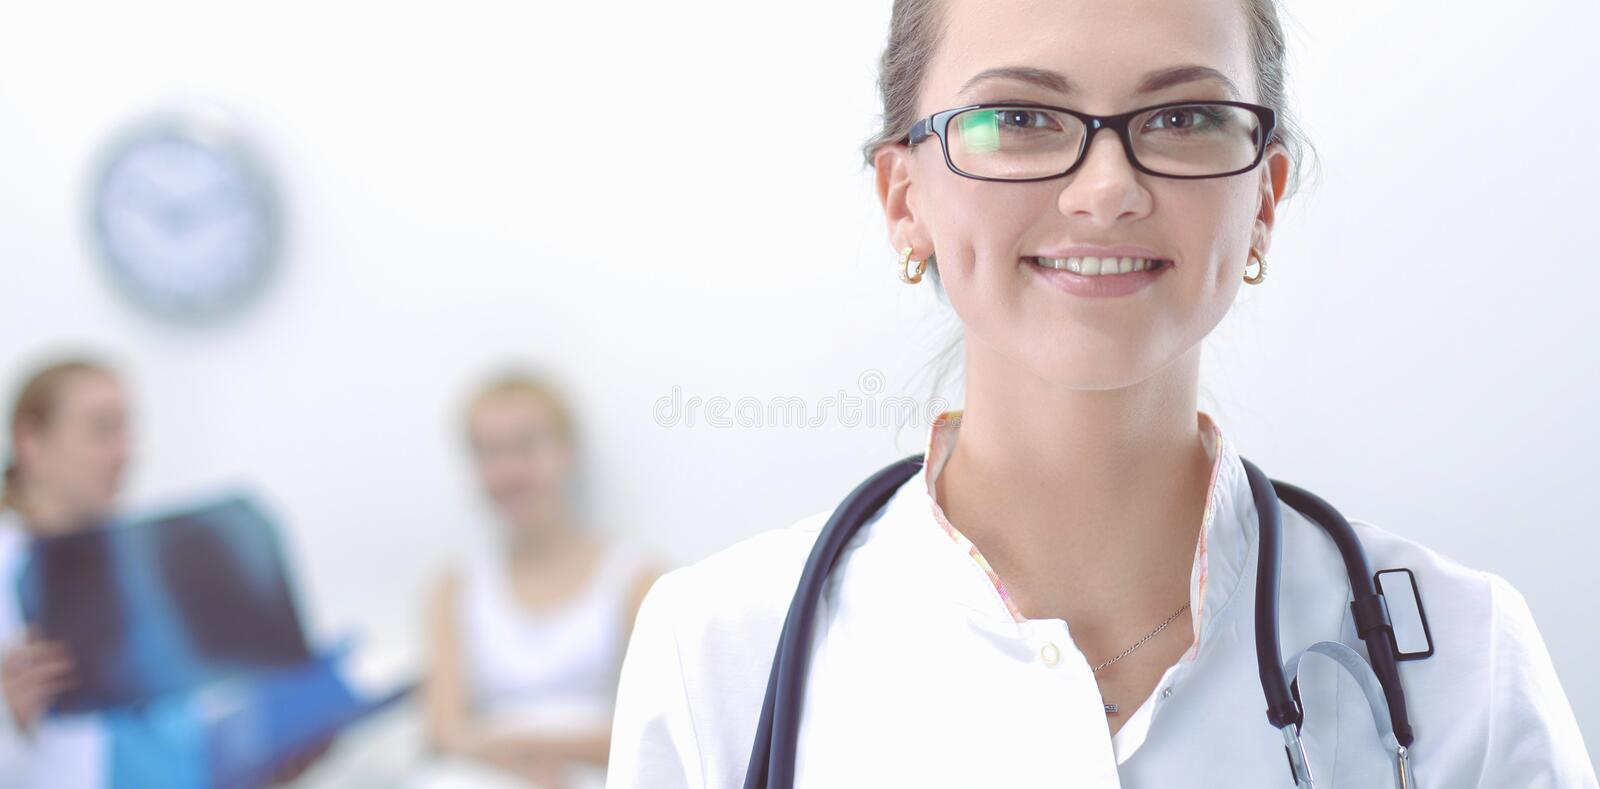 Young woman doctor standing at hospital with medical stethoscope royalty free stock photos